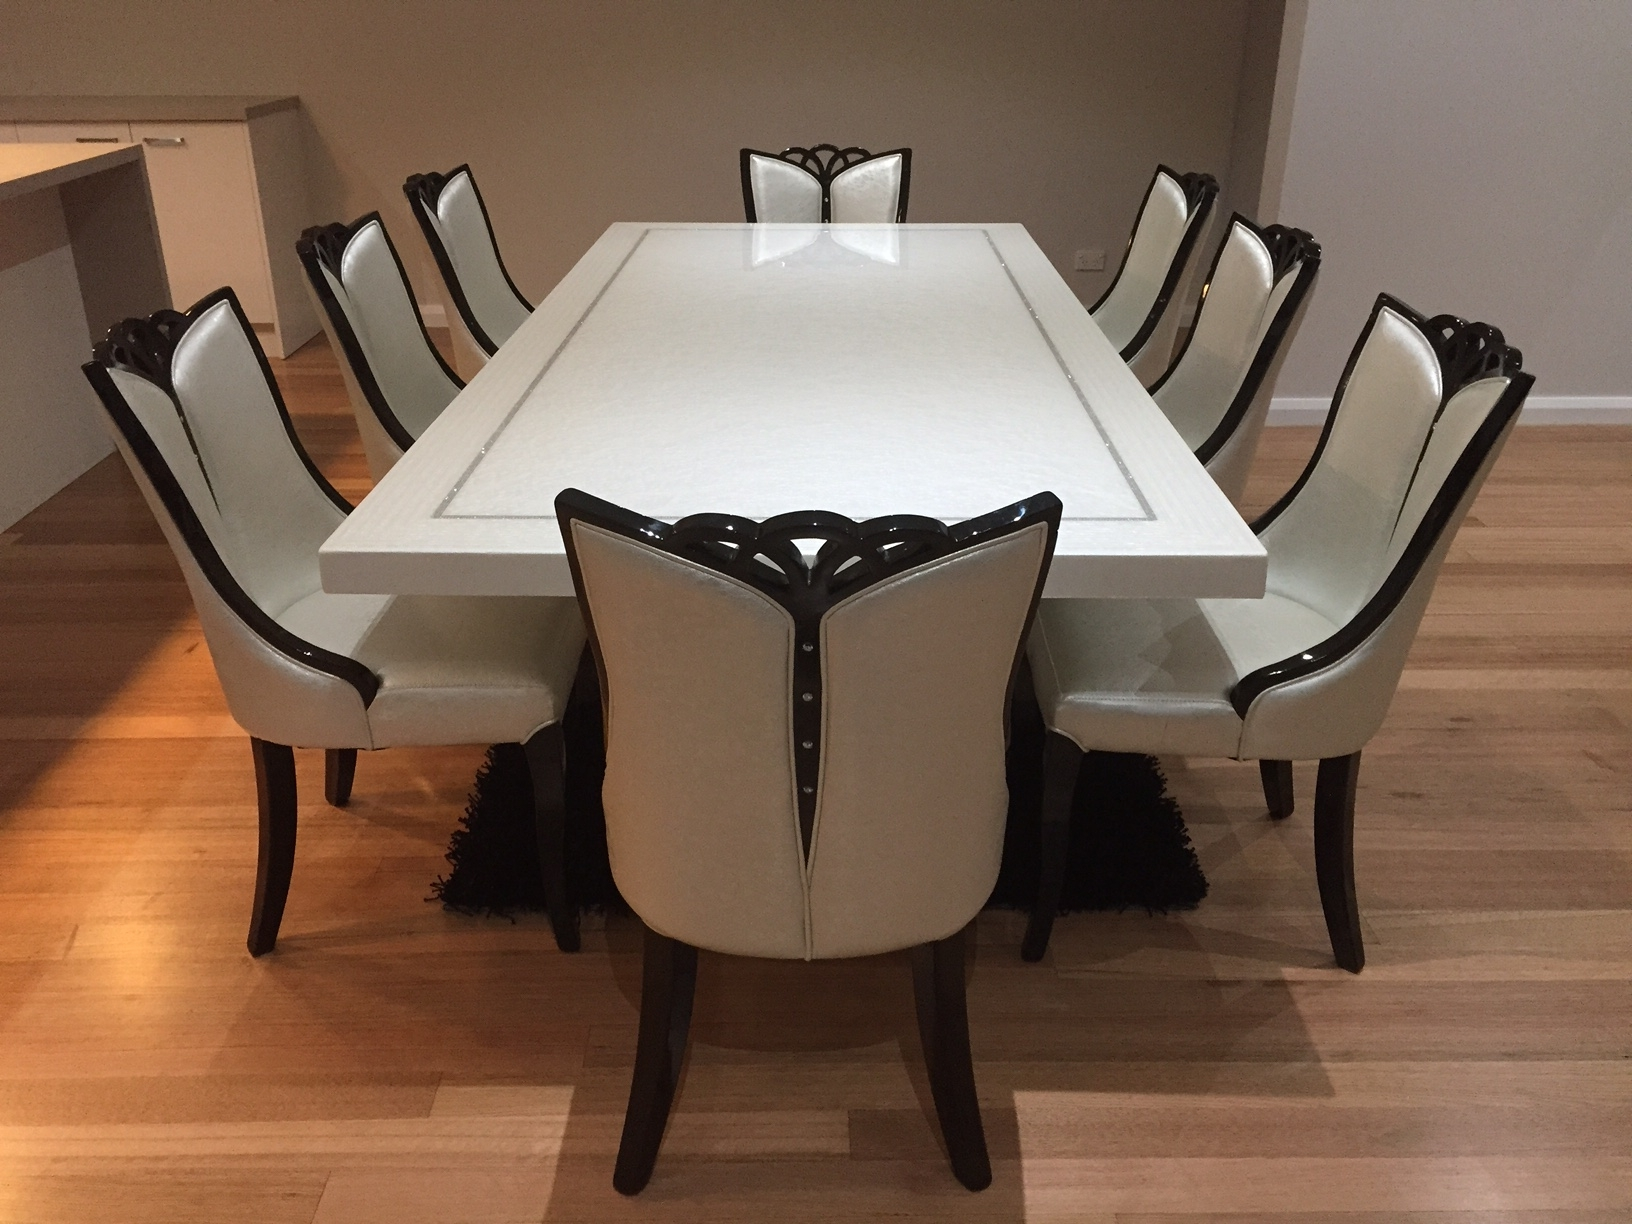 Widely Used Bianca Marble Dining Table With 8 Chairs Marble King, Dining Table With White Dining Tables 8 Seater (View 14 of 25)